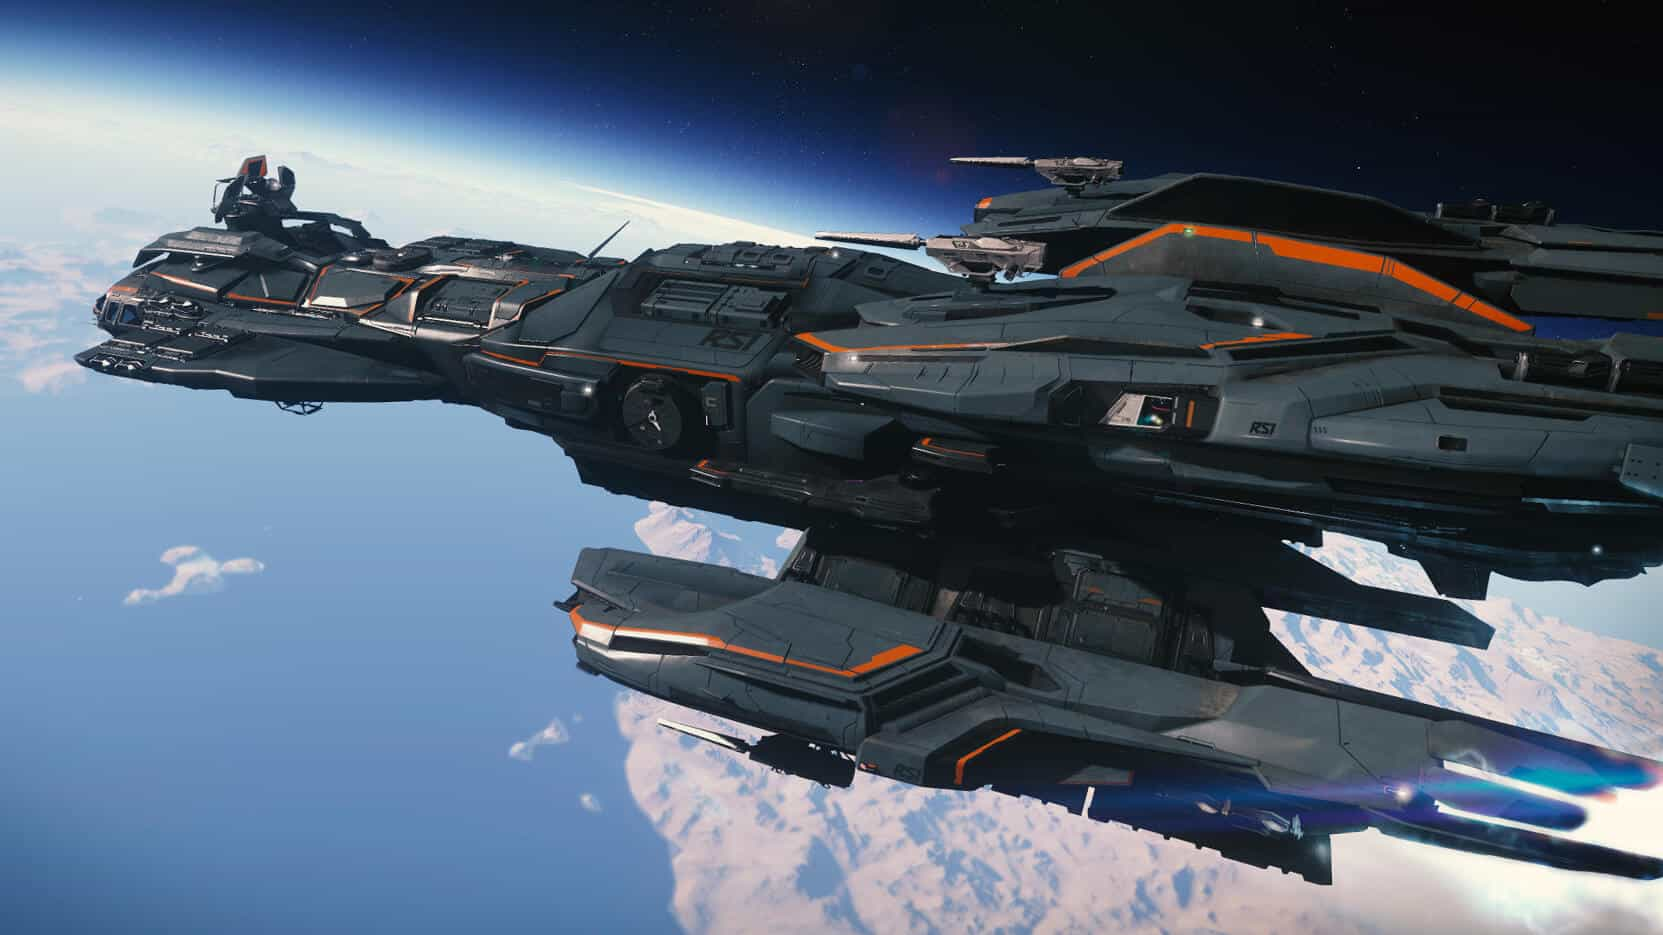 RSI Constellation Aquila